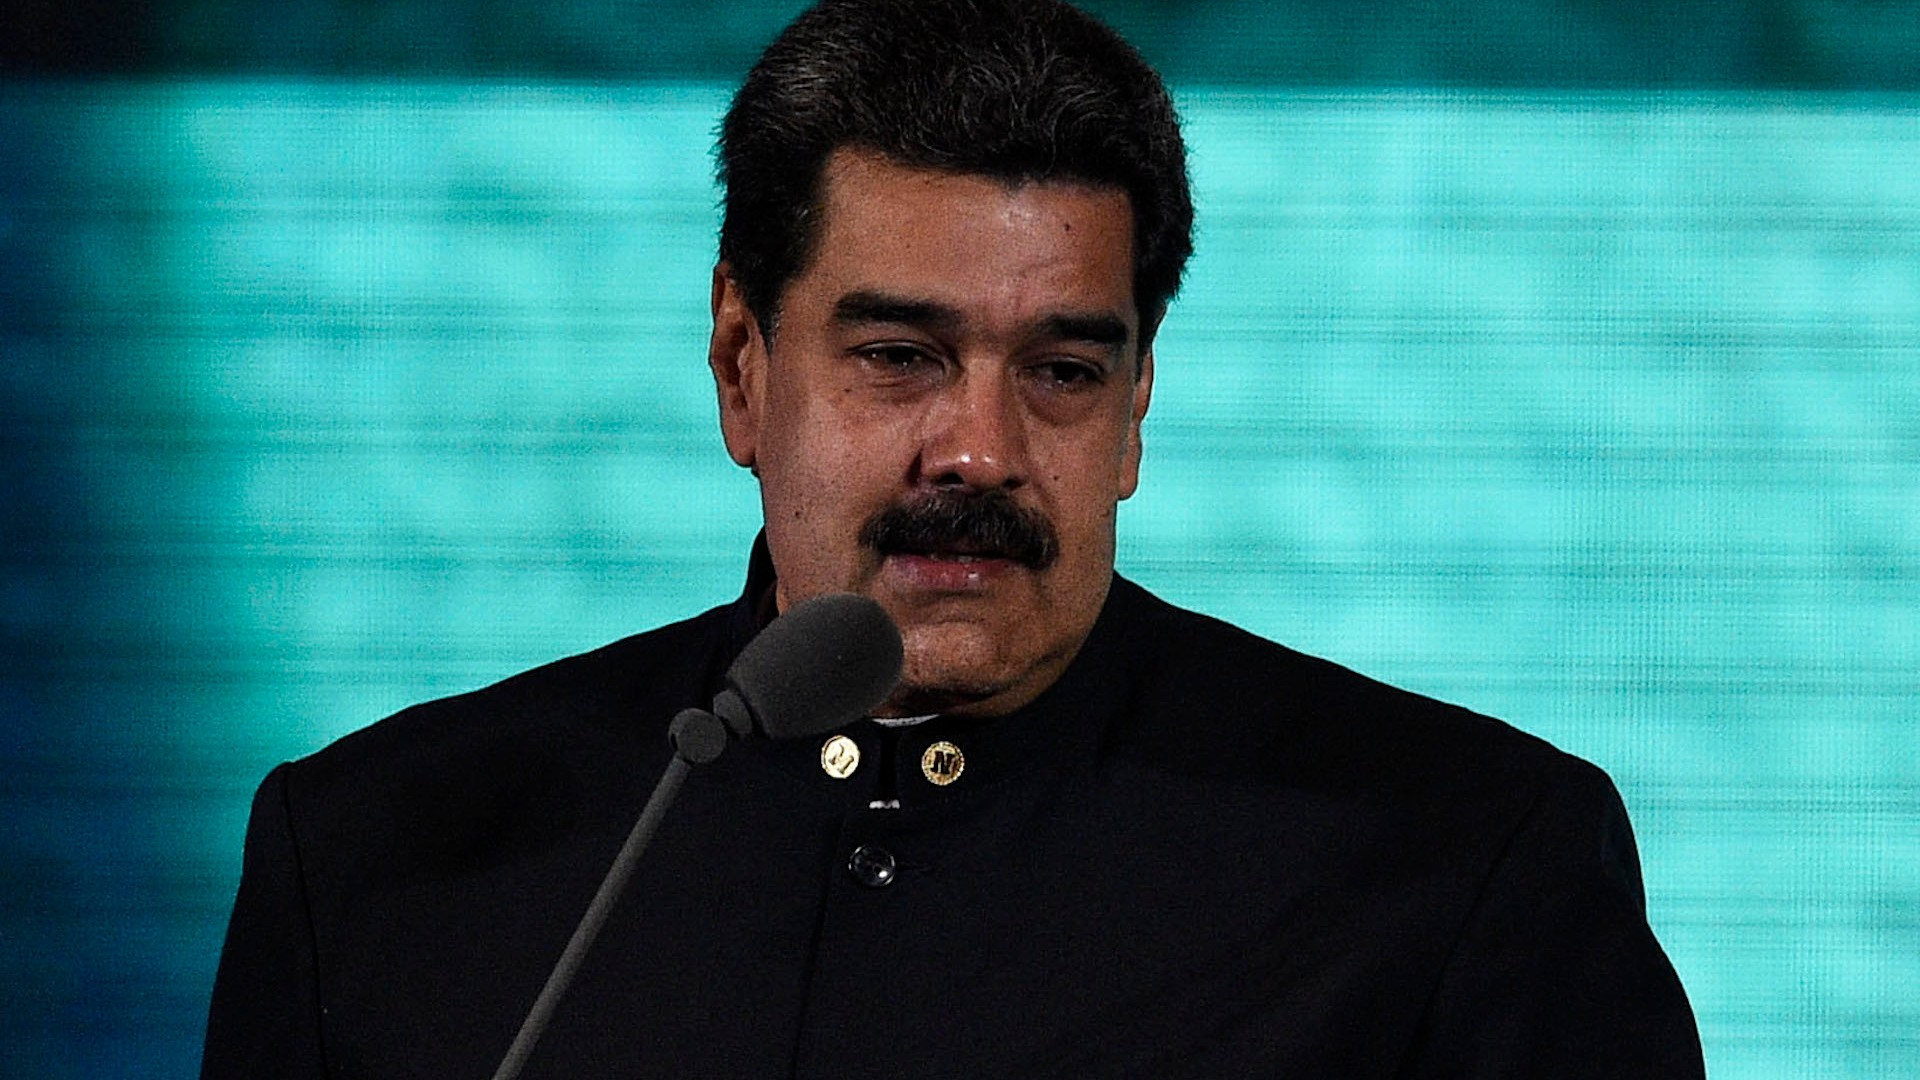 Venezuela's Maduro says Trump is a white supremacist and the White House is run by the Ku Klux Klan